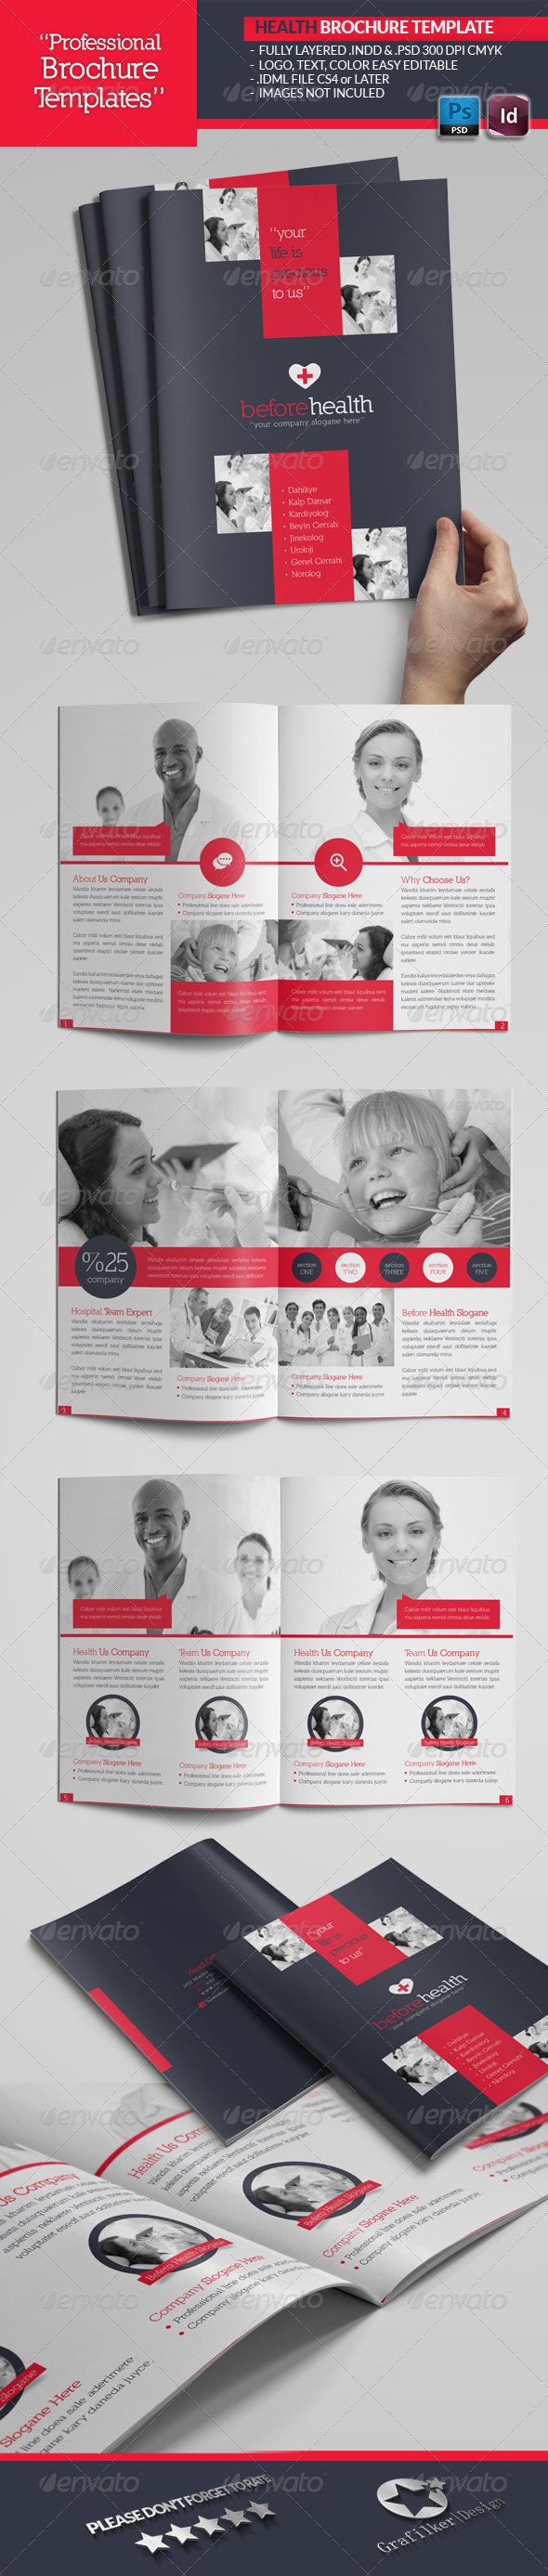 Health Brochure Template - Brochures Print Templates